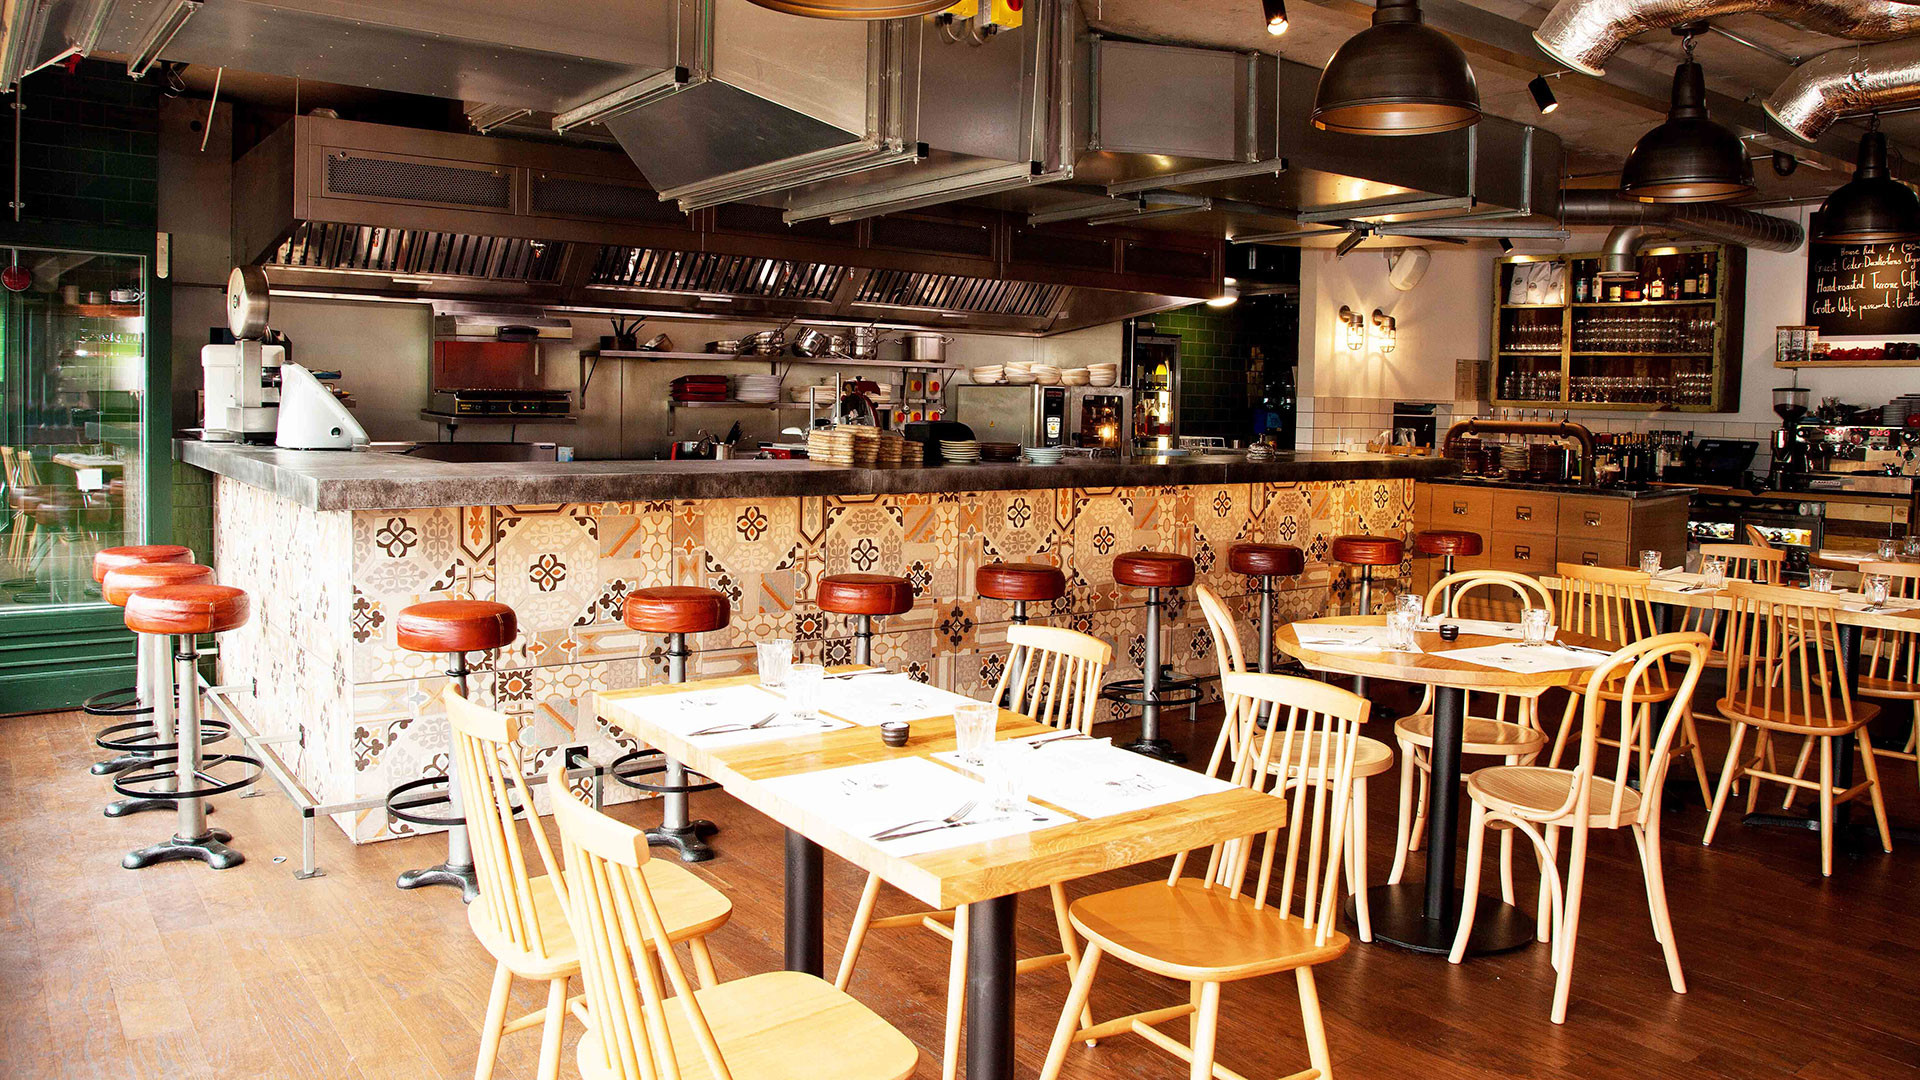 The interiors at Gotto Trattoria, in the Olympic Village